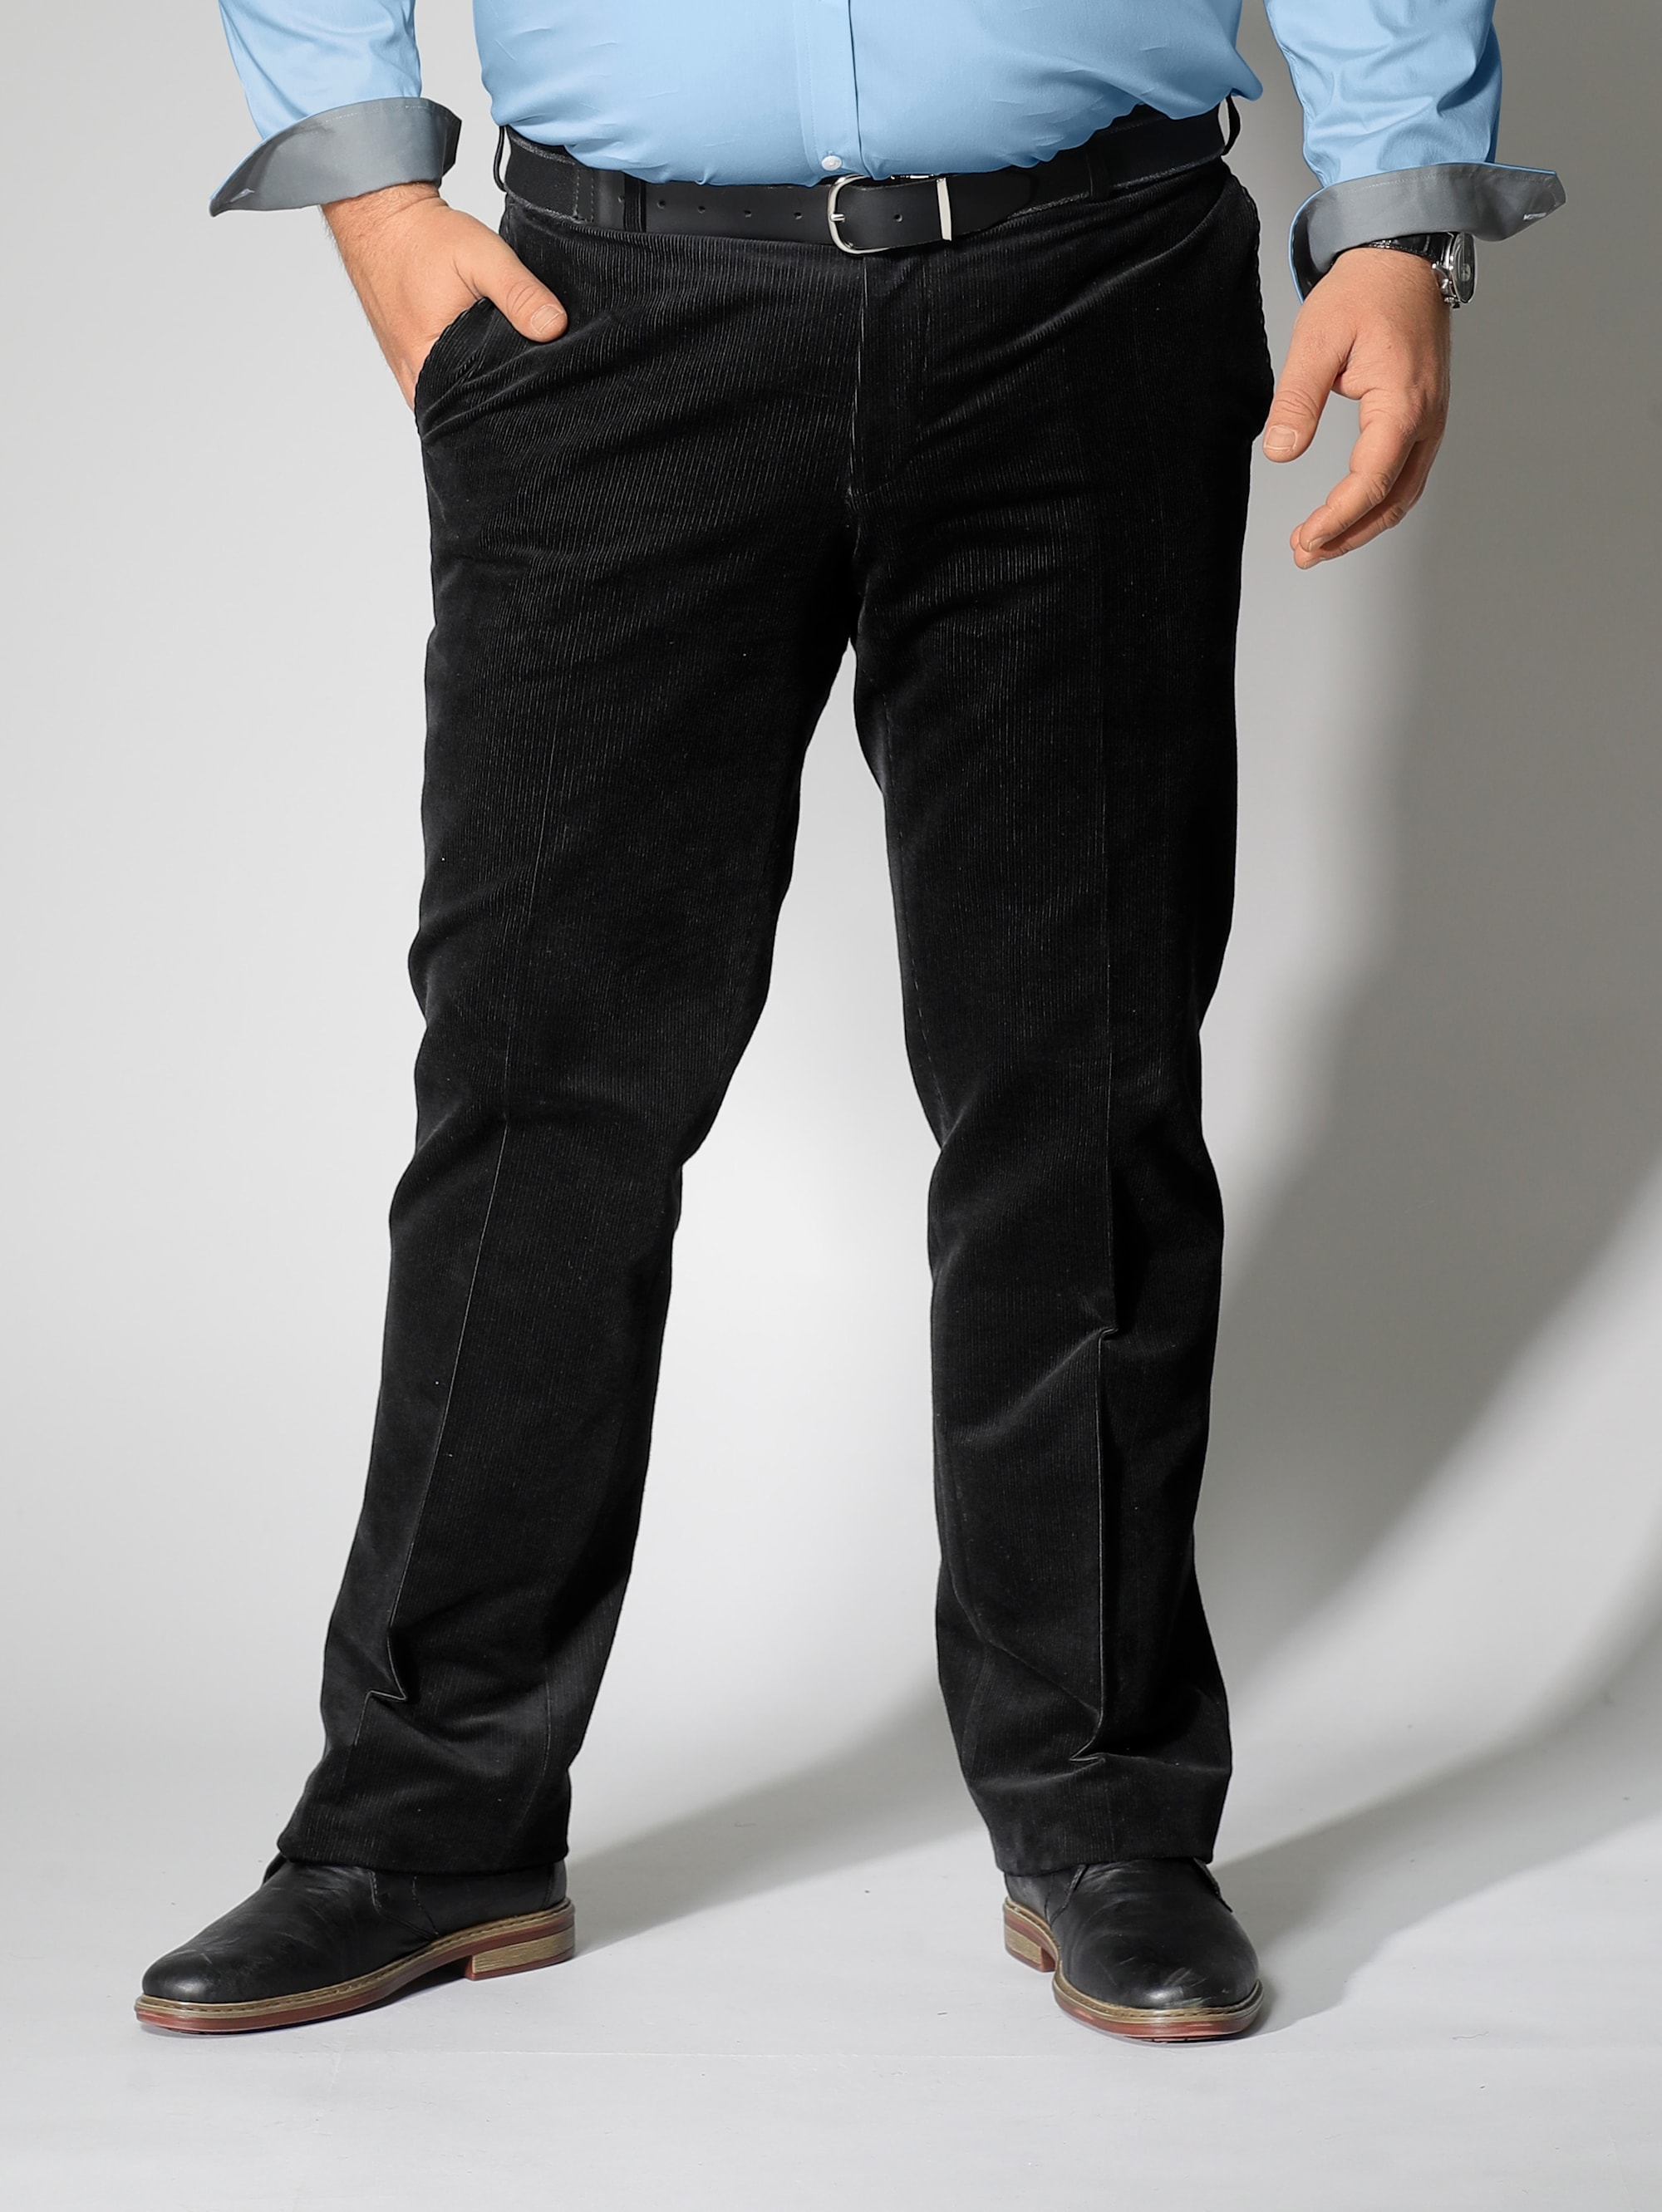 Men Plus by Happy Size Cordhose Spezialschnitt | Bekleidung > Hosen > Cordhosen | Men Plus By Happy Size